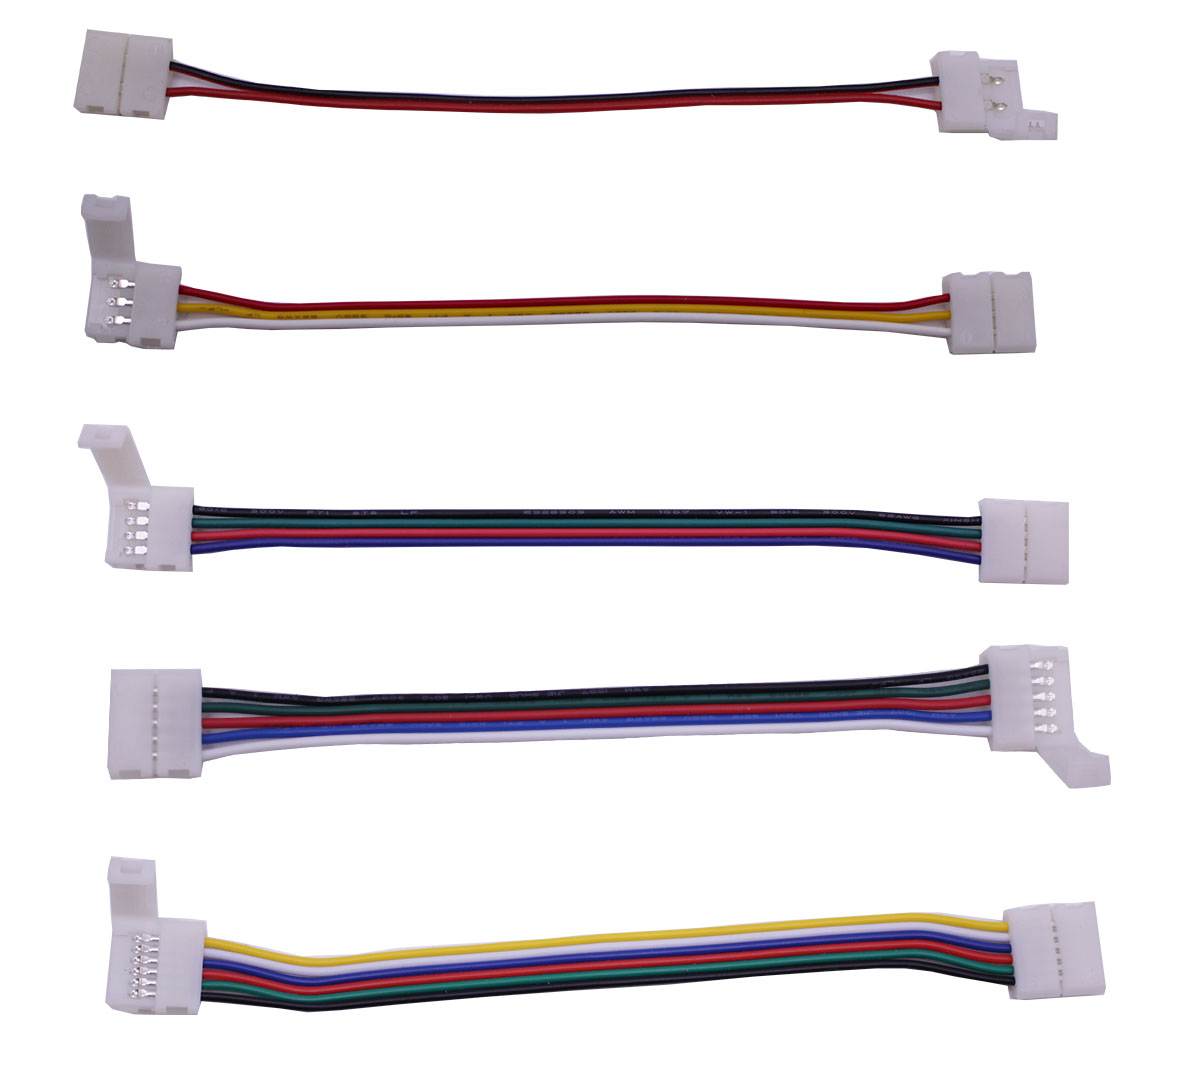 2pin <font><b>3pin</b></font> <font><b>4pin</b></font> 5pin 6pin led wire connector Electronic Connector Wire <font><b>cable</b></font> for led strip light tape white cct <font><b>RGB</b></font> RGBW RGBCCT image